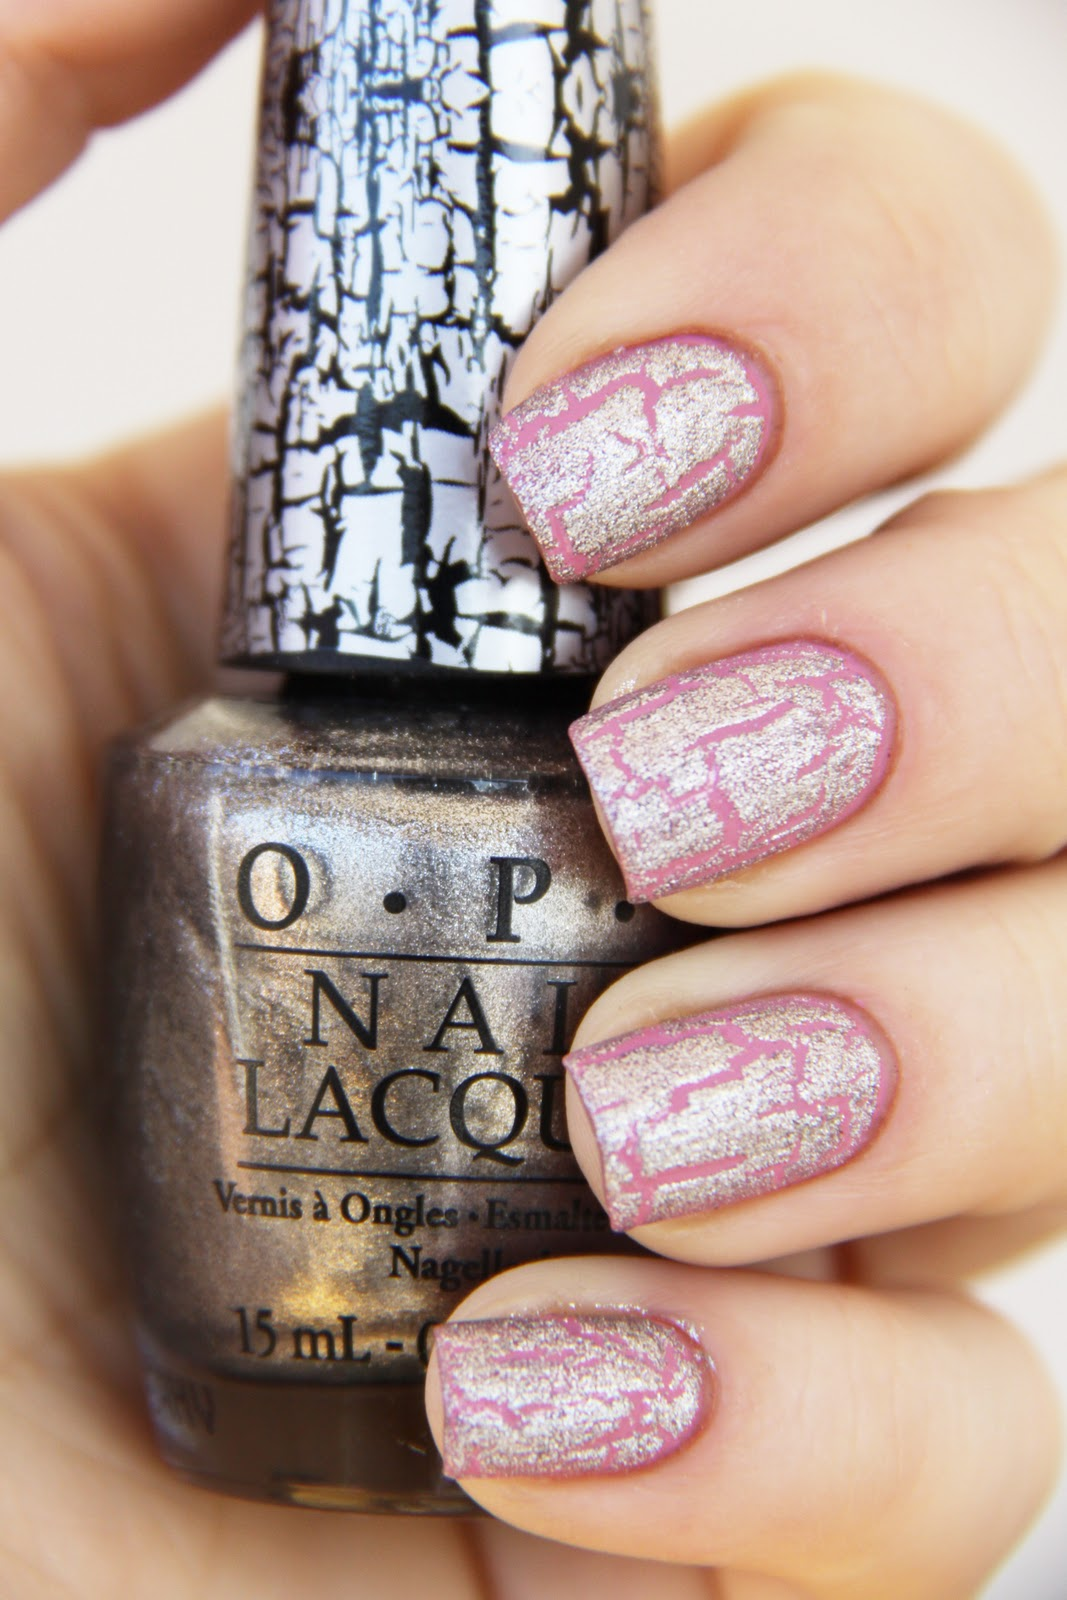 Nails by Catharina: OPI Sparrow me the drama + Silver shatter